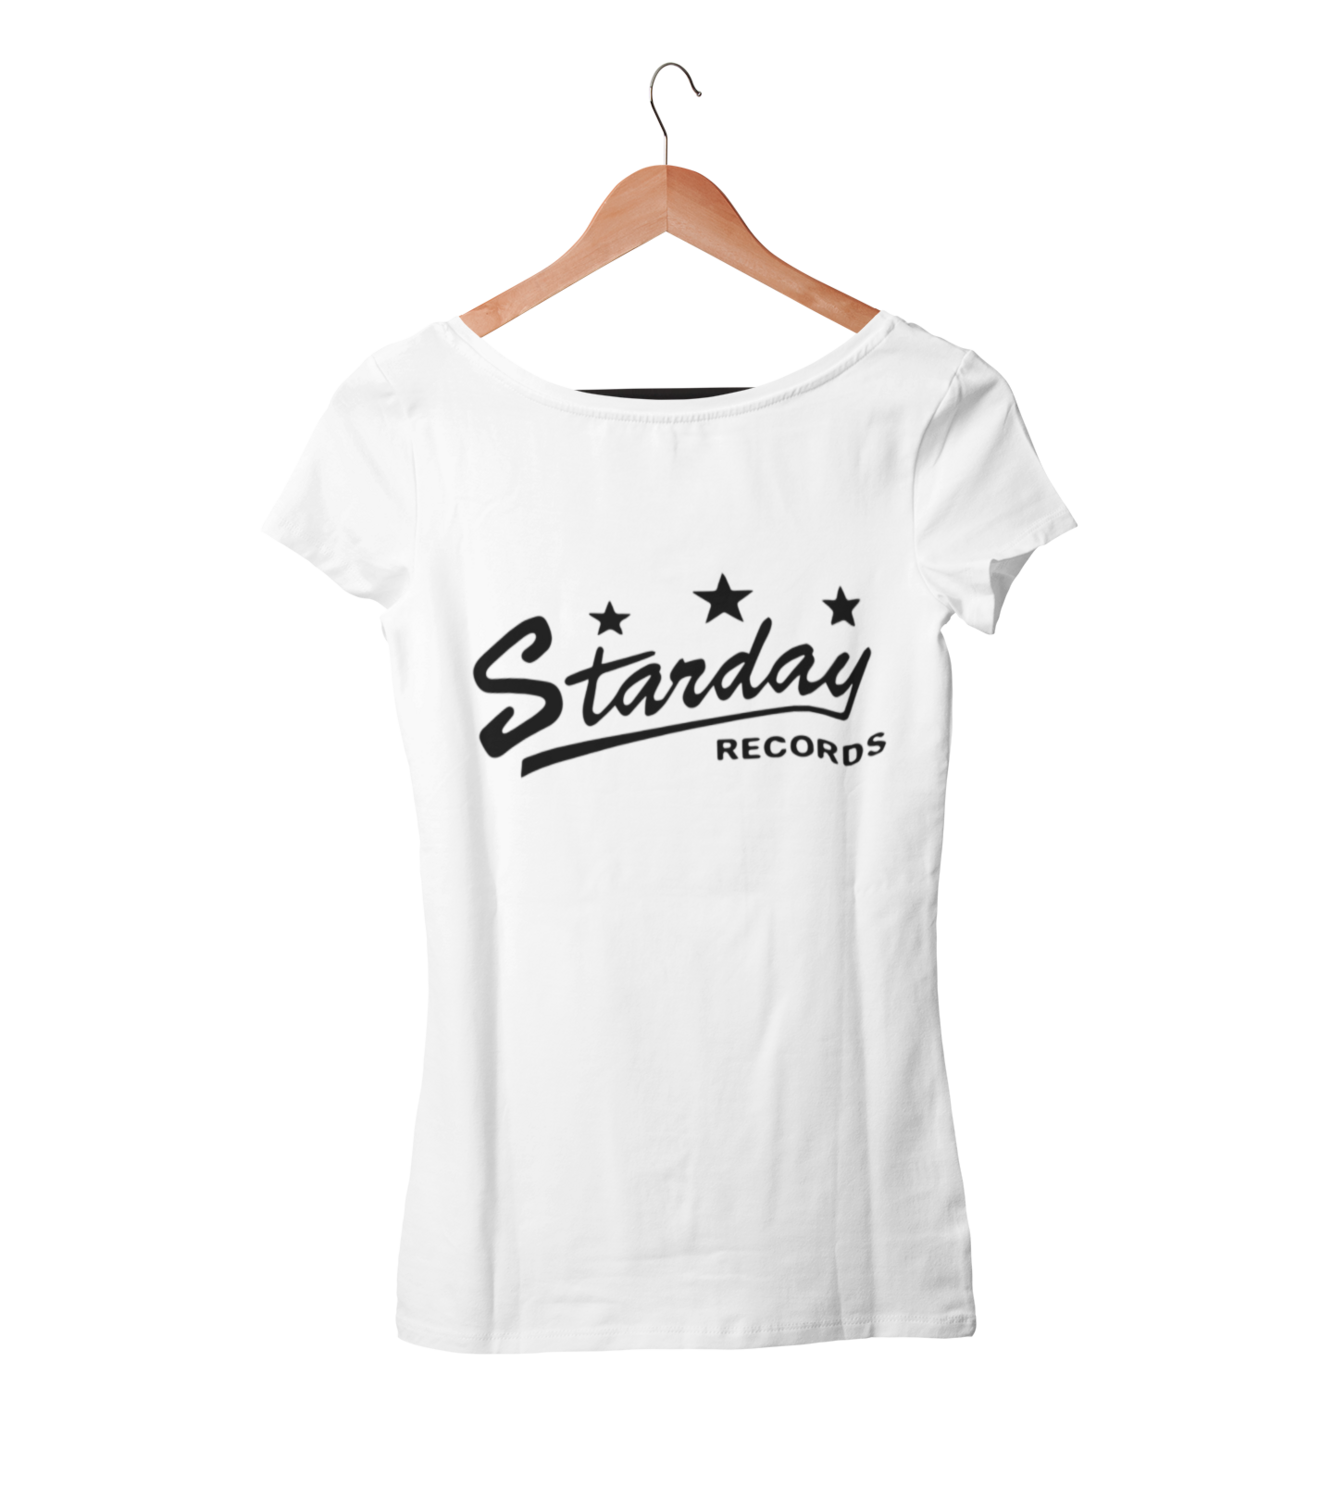 STARDAY RECORDS T-SHIRT WOMAN